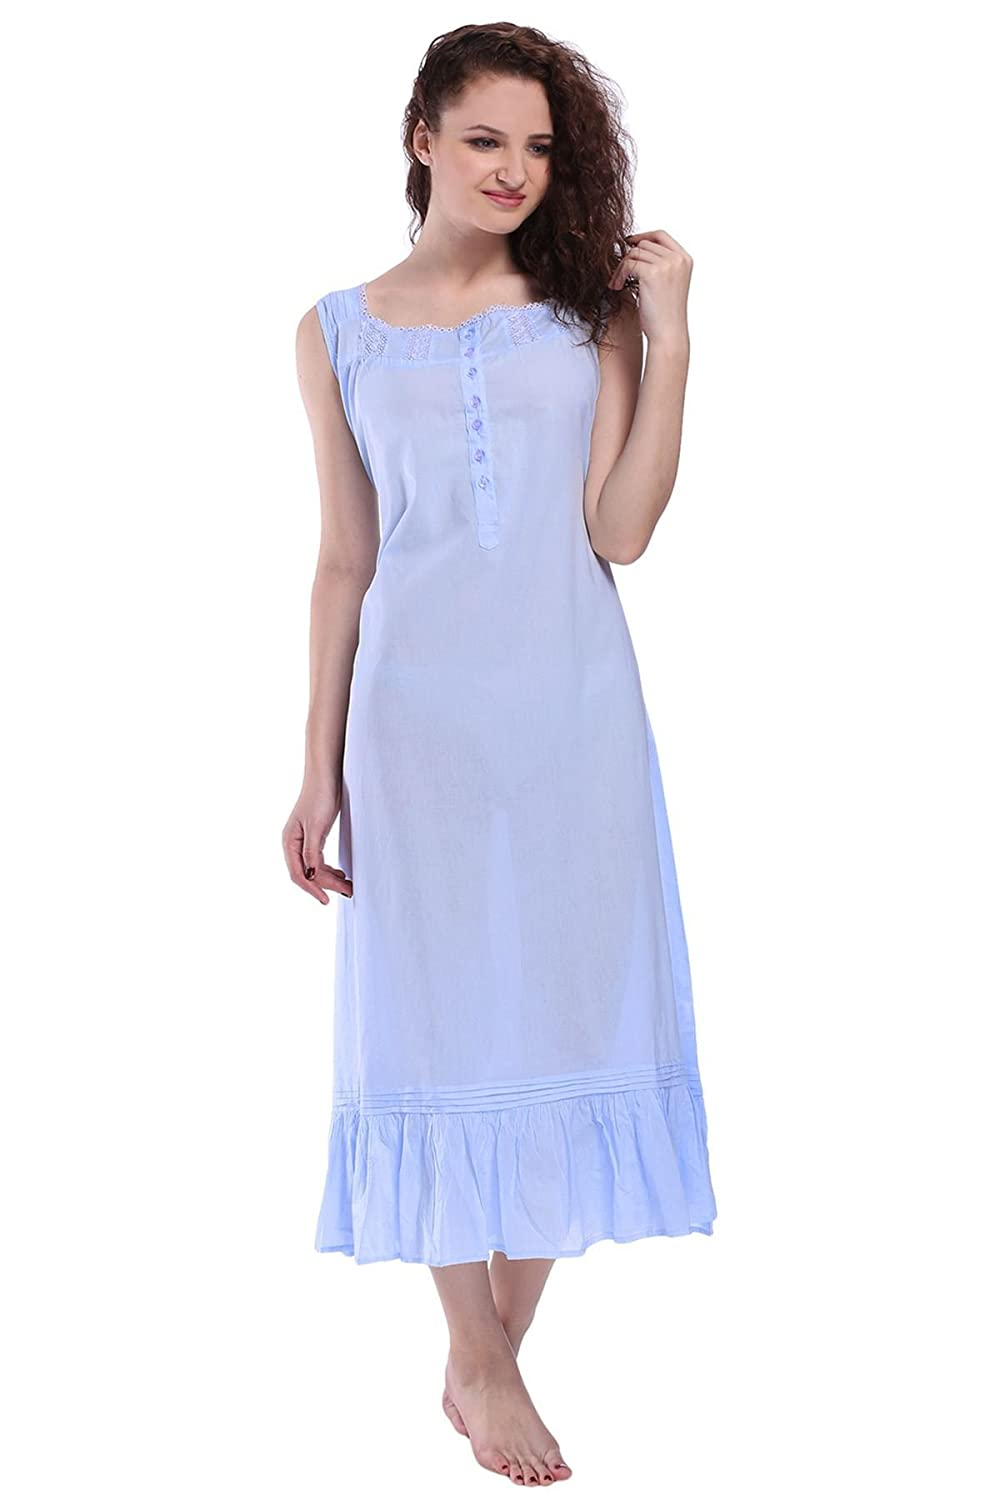 87fd39f3e Miss Lavish London Victorian Style Nightgown Sleeveless Long ...